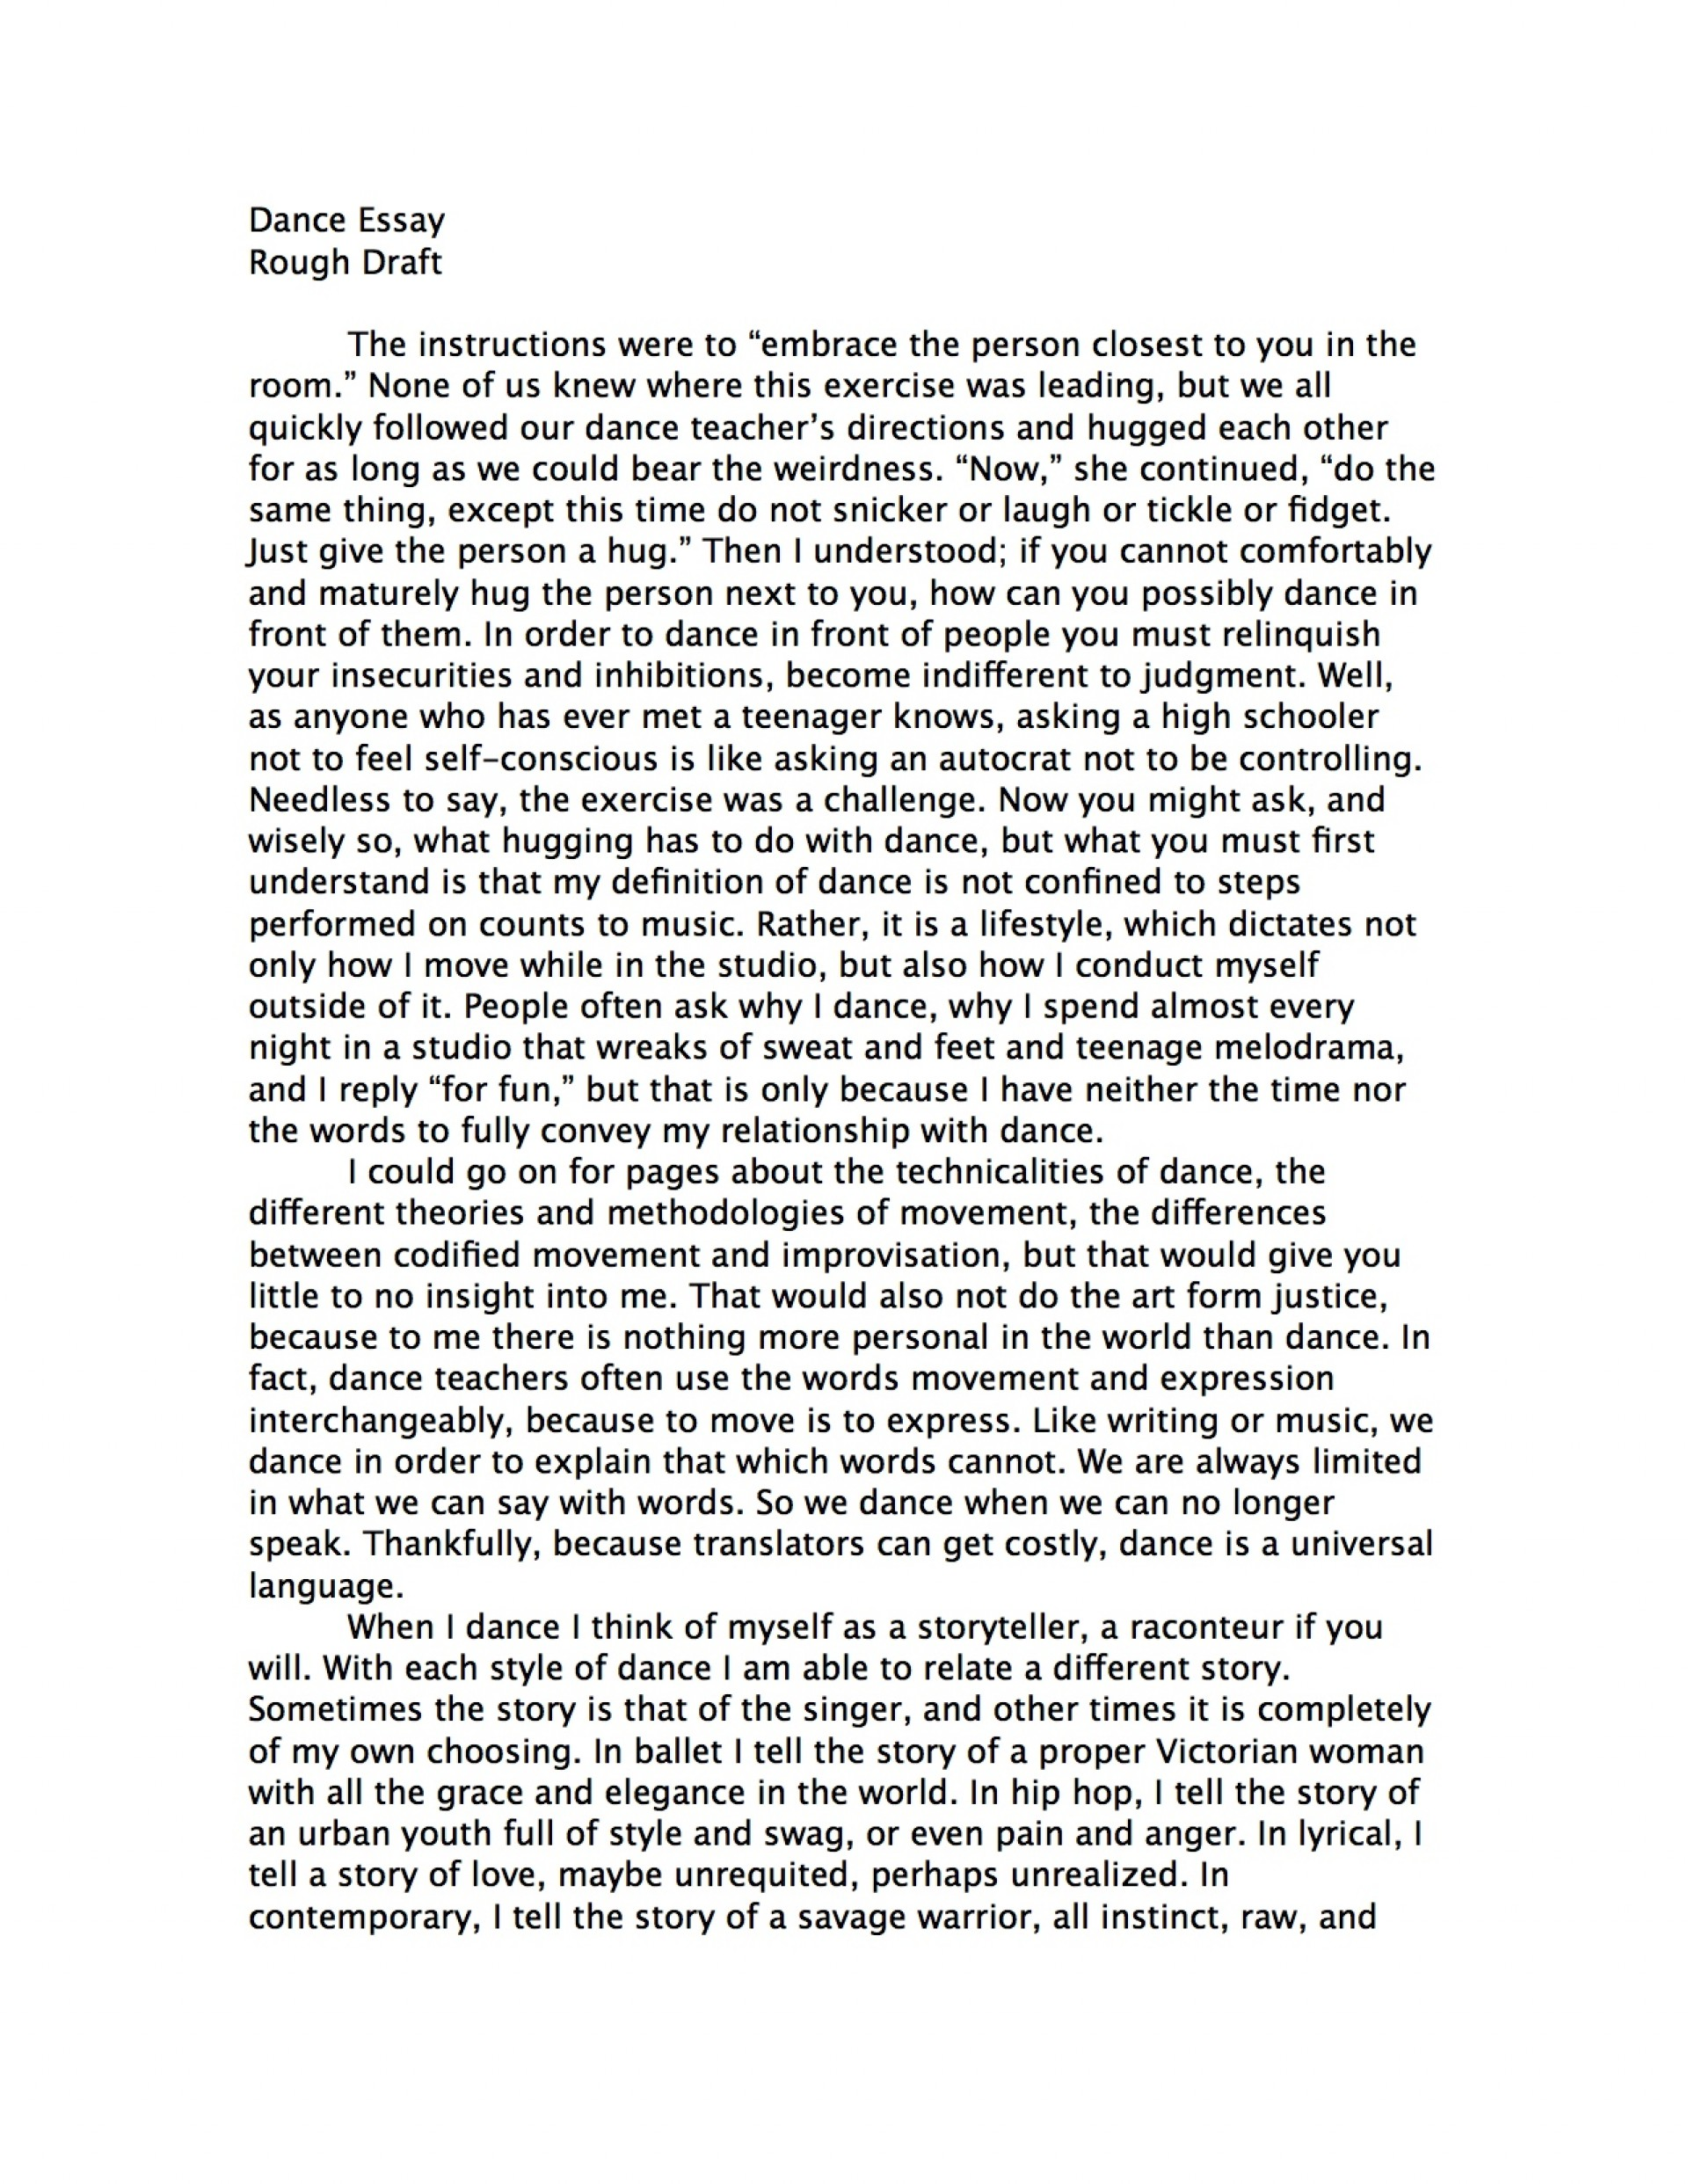 002 Essay Example How To Start Good Proposal Amazing College Essays Writing In About Failure Rebecca Nueman Dance Your Background Yourself Hook Off Examples Prompt Awesome A Sentence For Introduction 1920